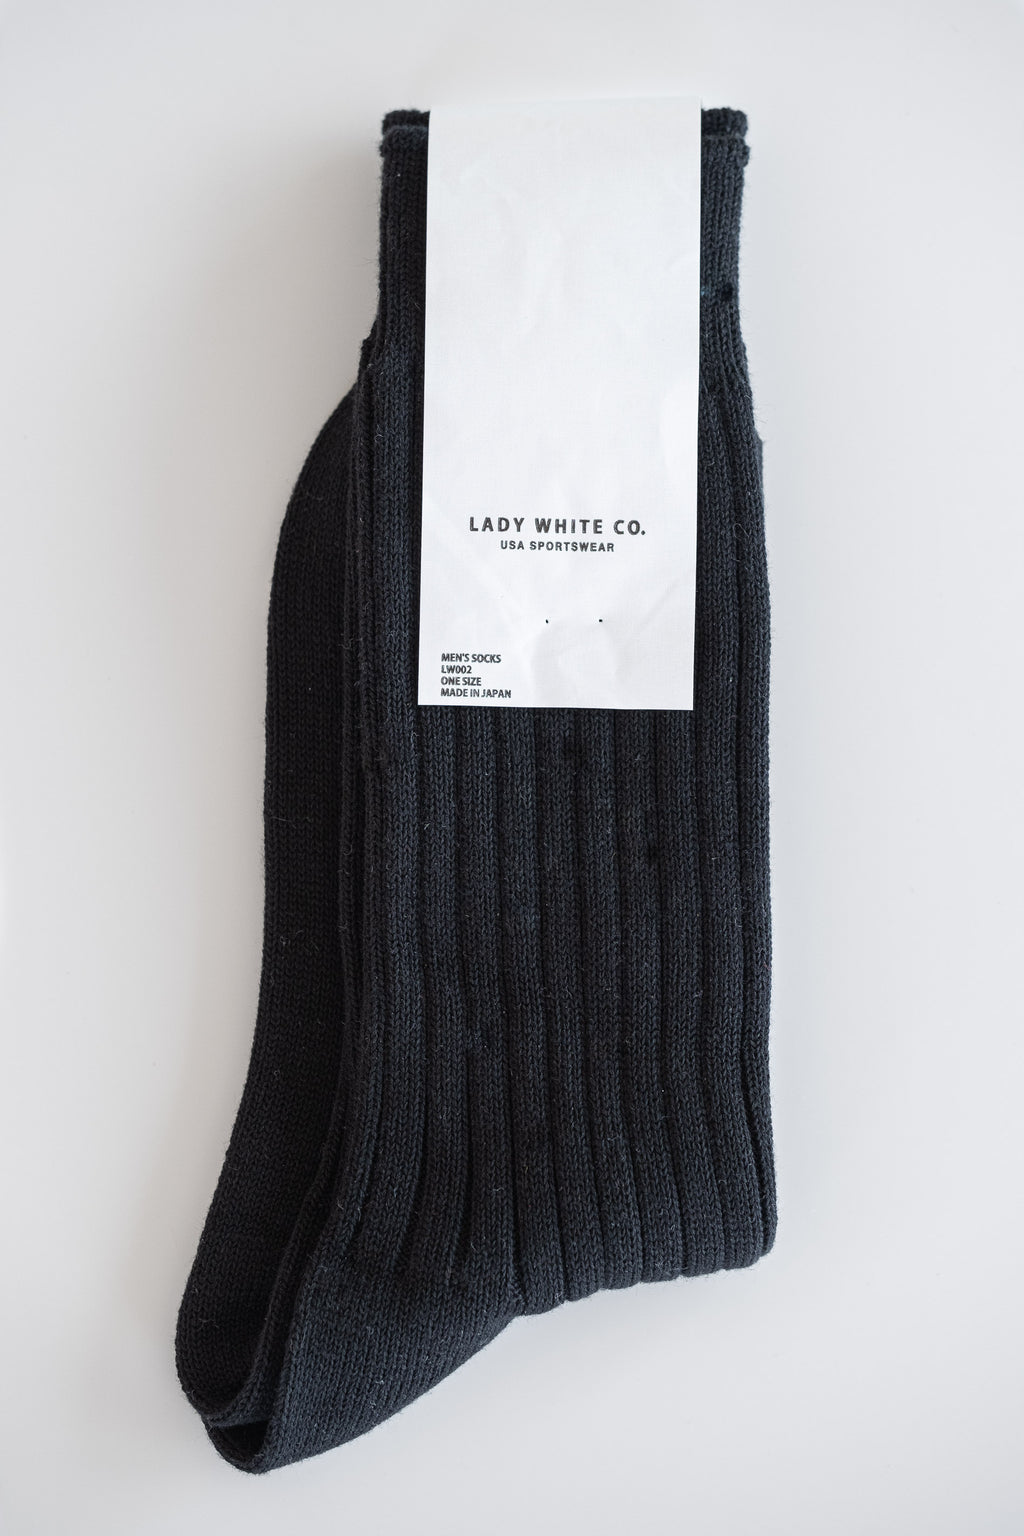 BLACK ATHLETIC SOCKS